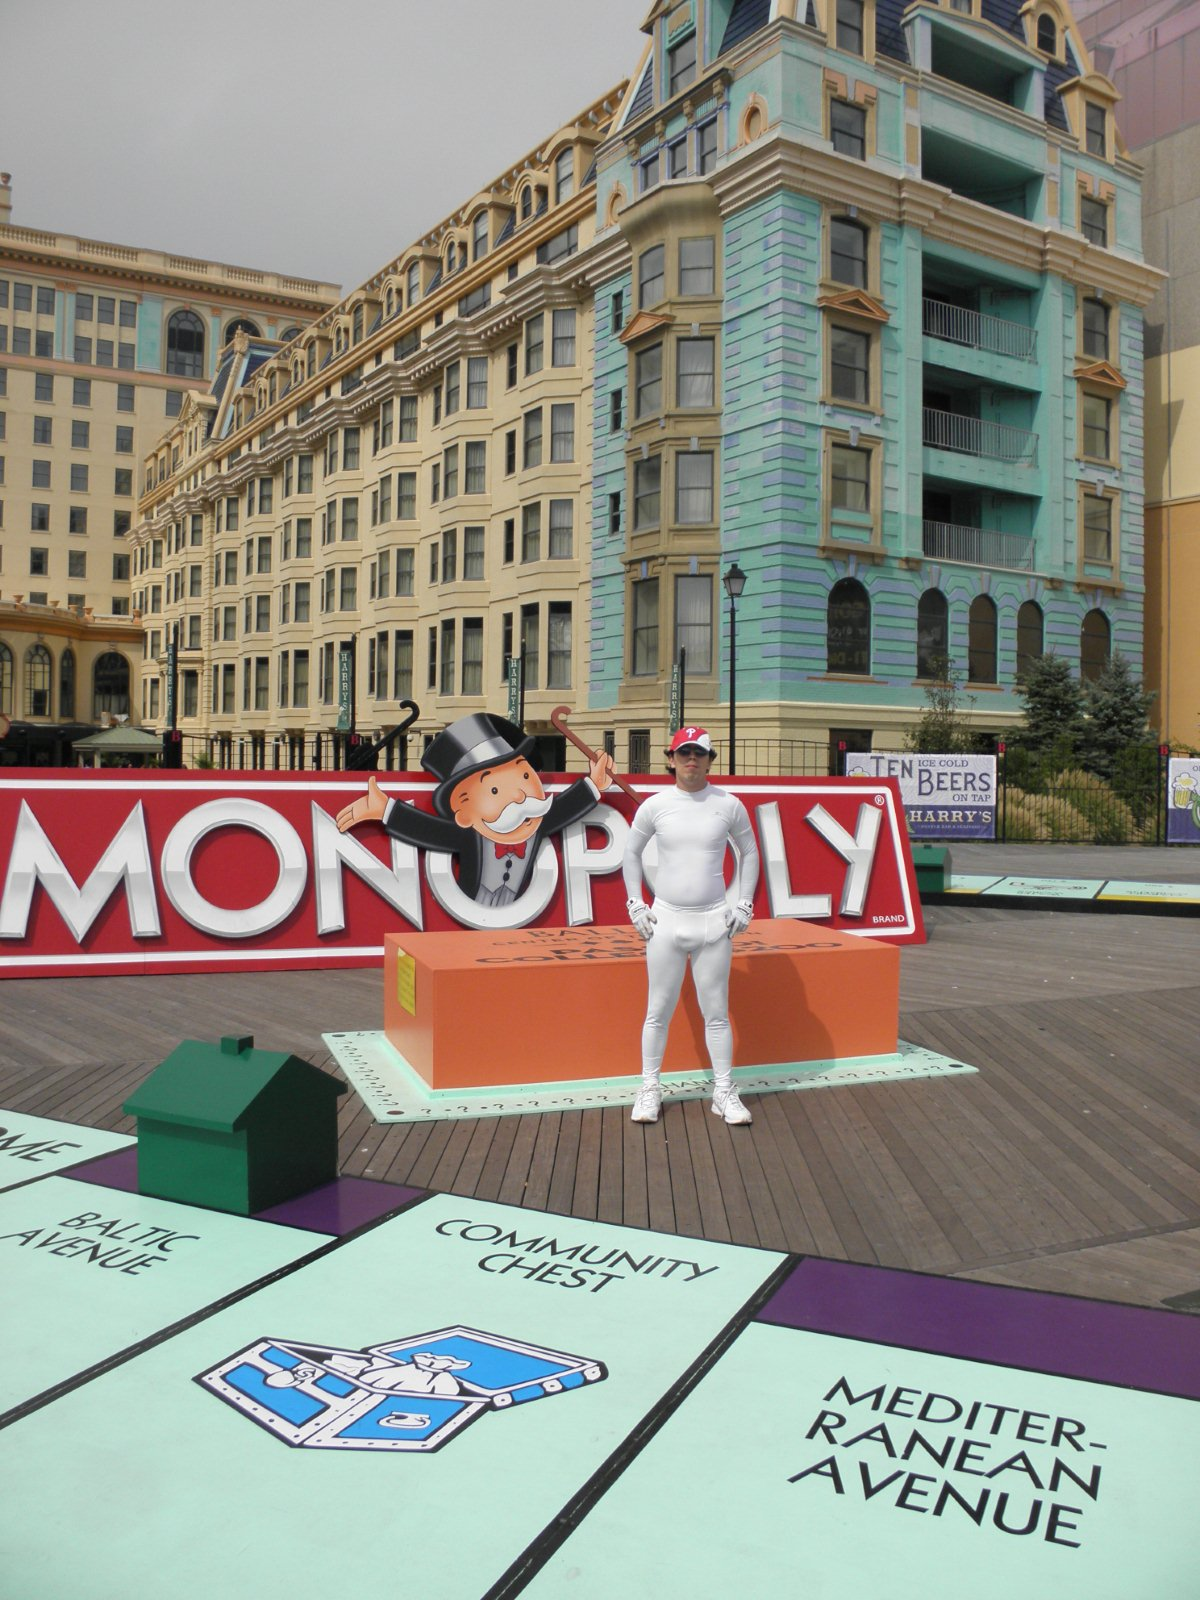 Monopoly Board Game On the Atlantic City, New Jersey Board Walk.  Bally's casino's  Atlantic City New Jersey